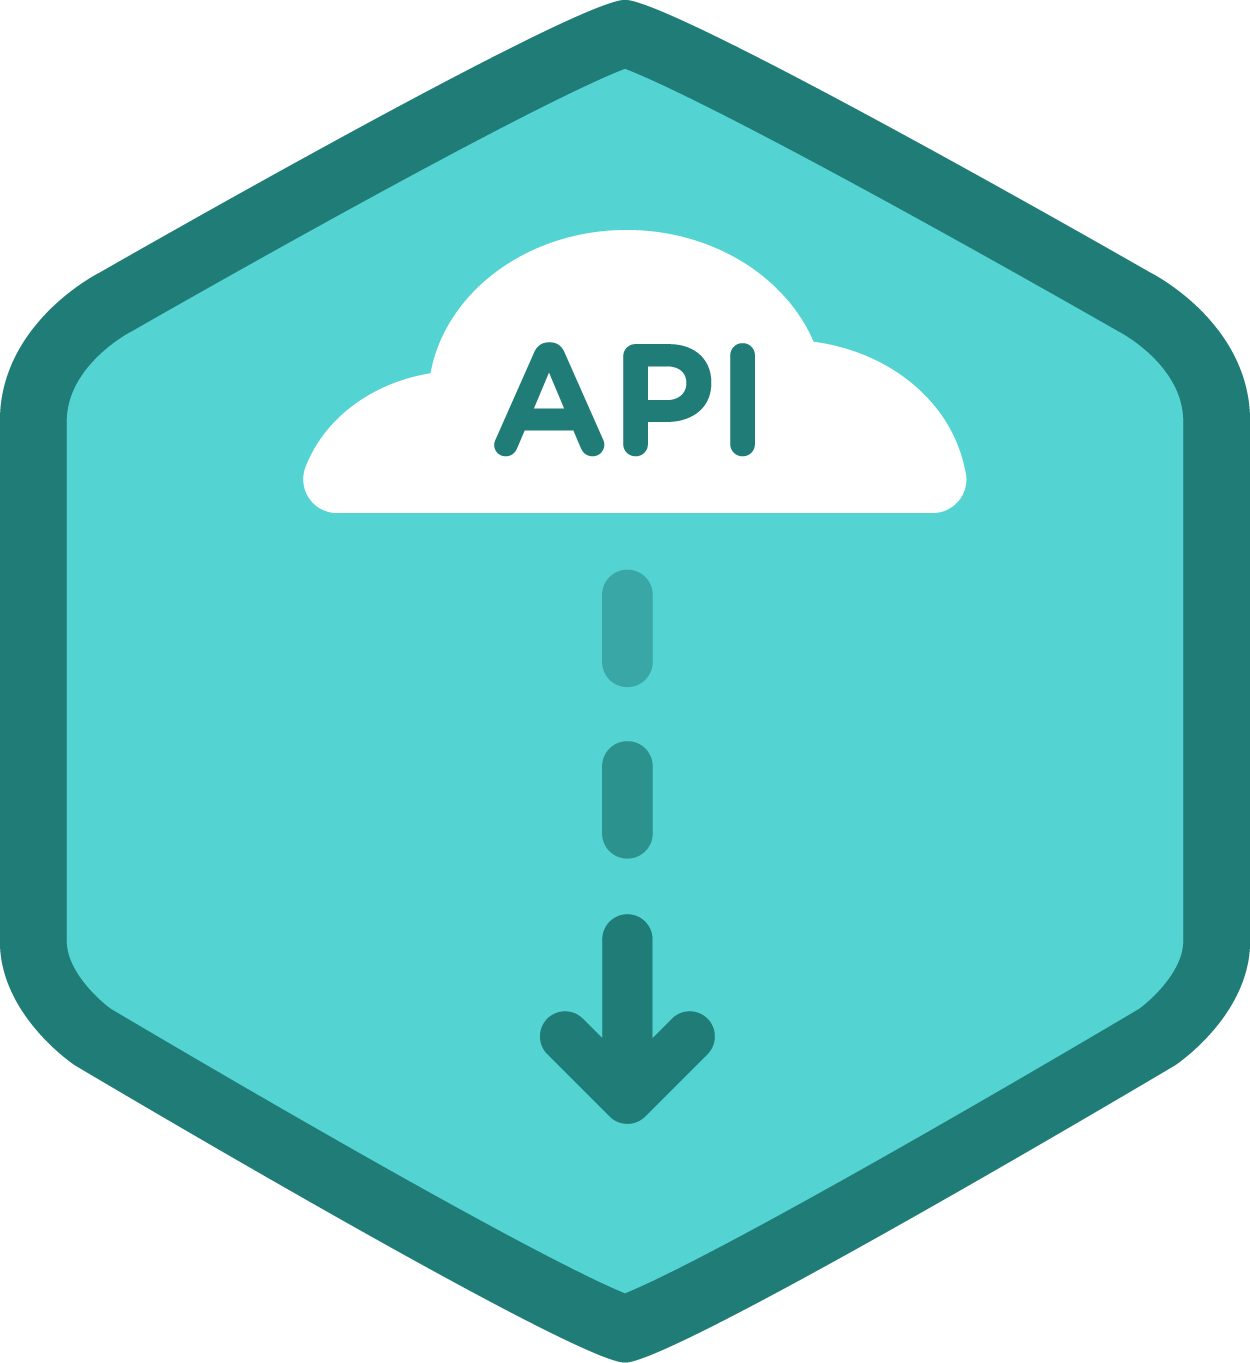 Refactoring and Modularizing a REST API